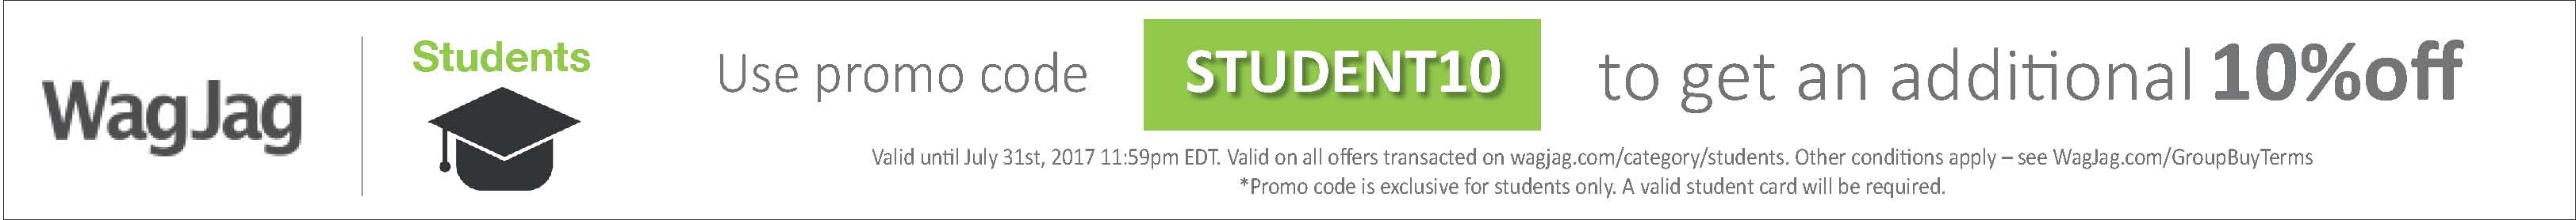 Save an extra 10% on offers in our student category with code STUDENT10